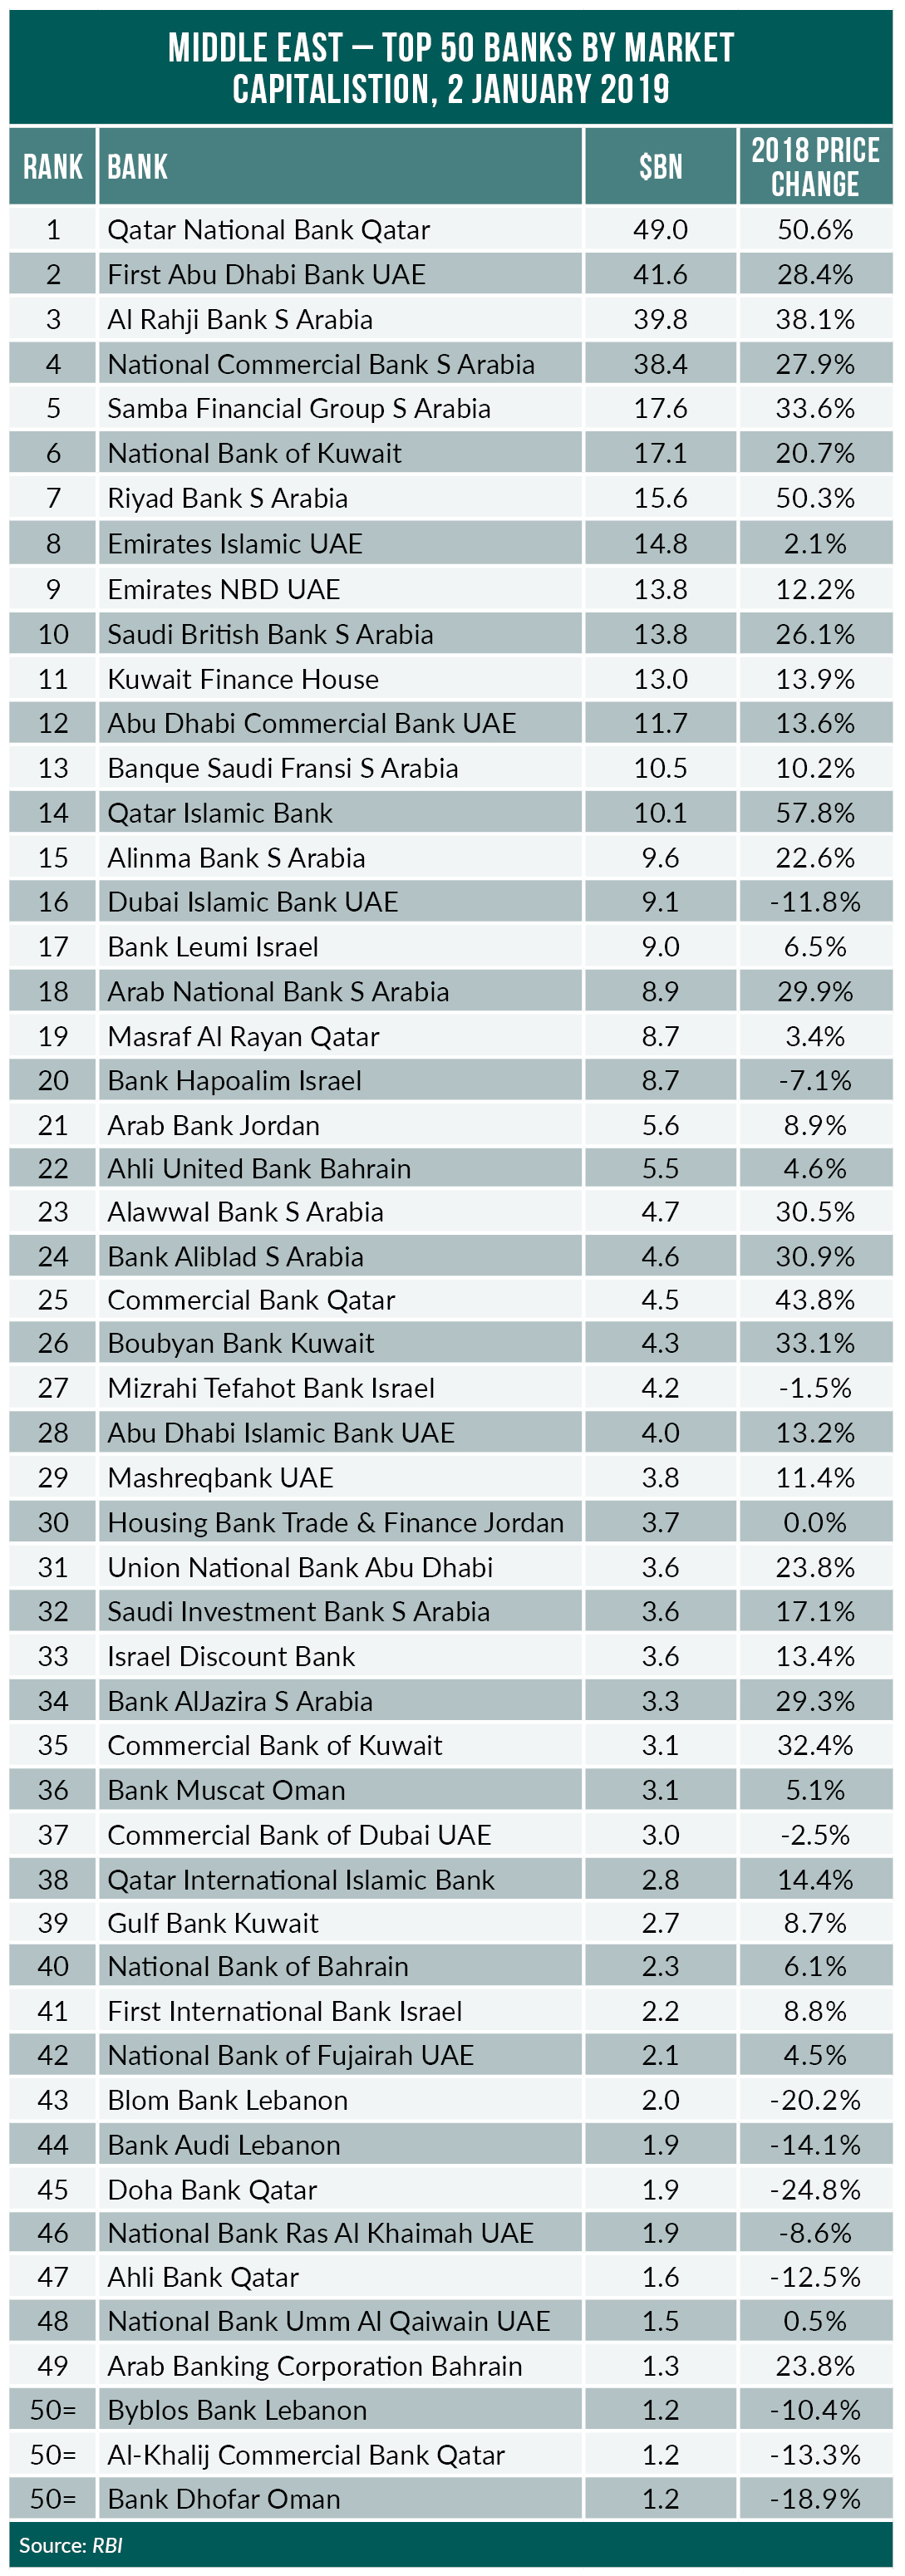 Largest Middle East banks